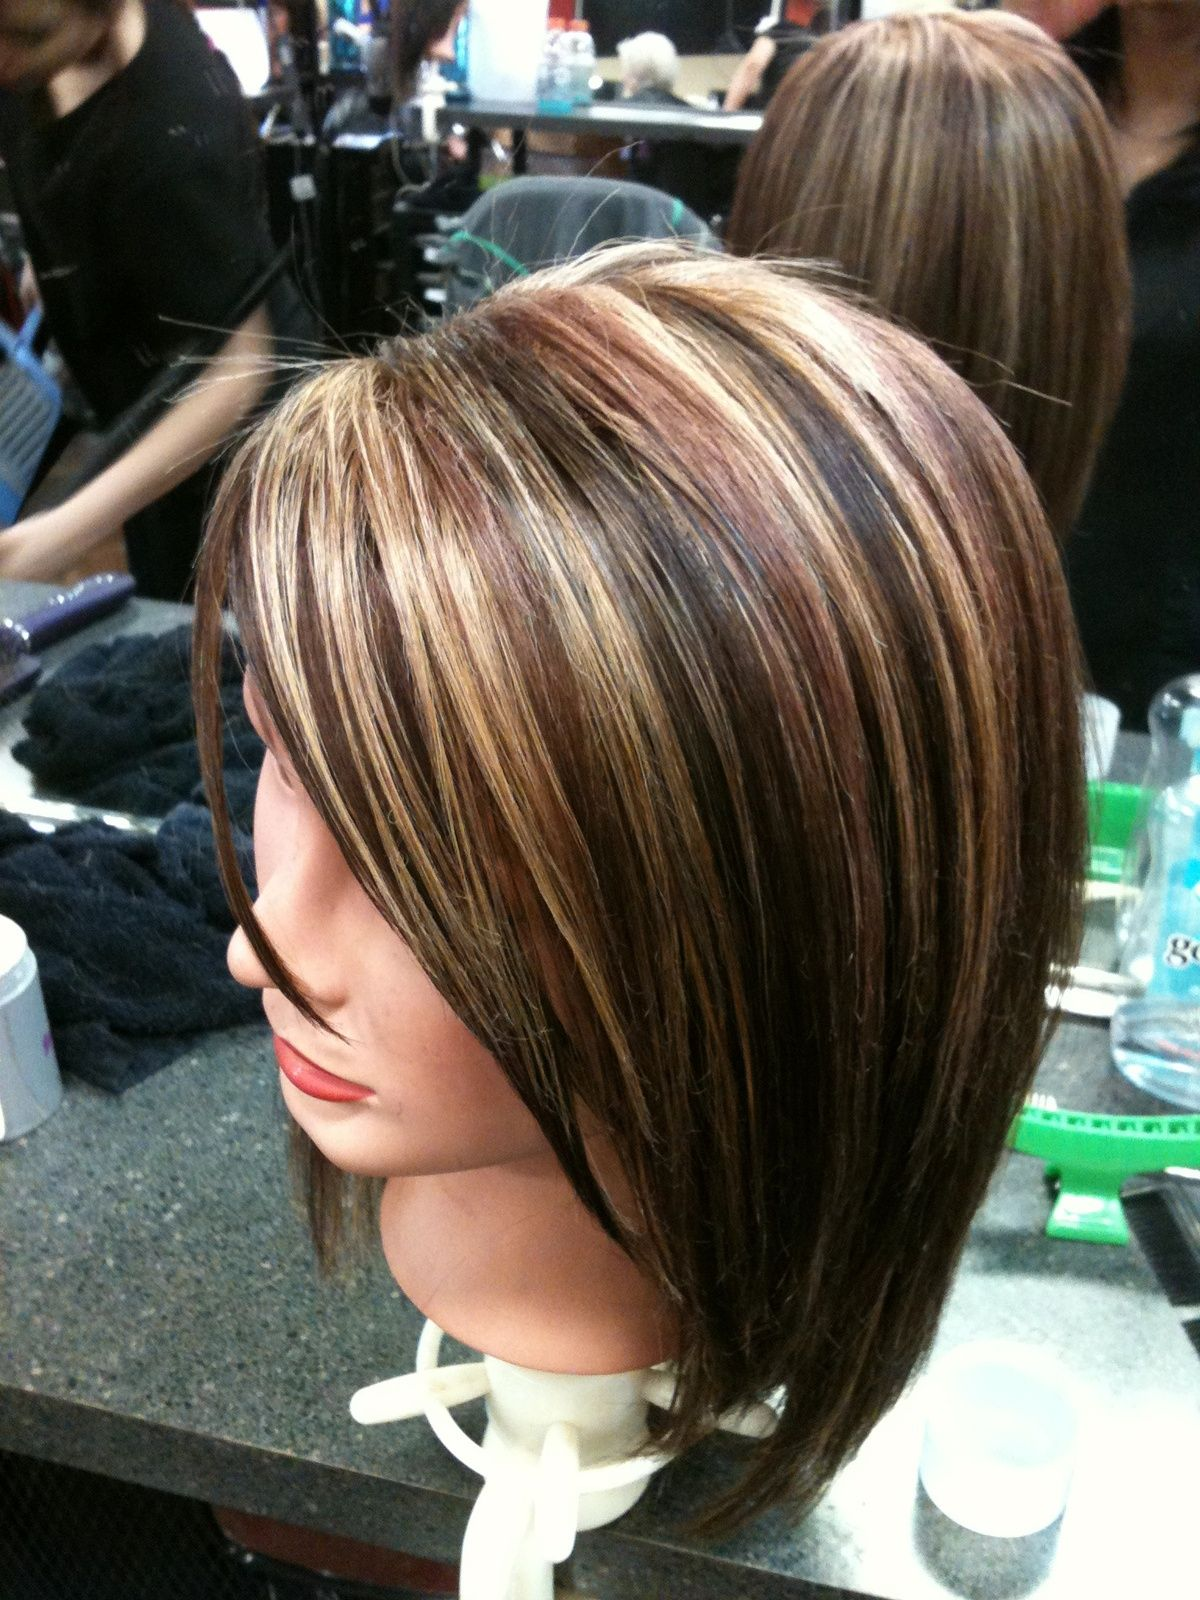 Get Makeup Out Of Anything Color De Cabello Pinterest Hair